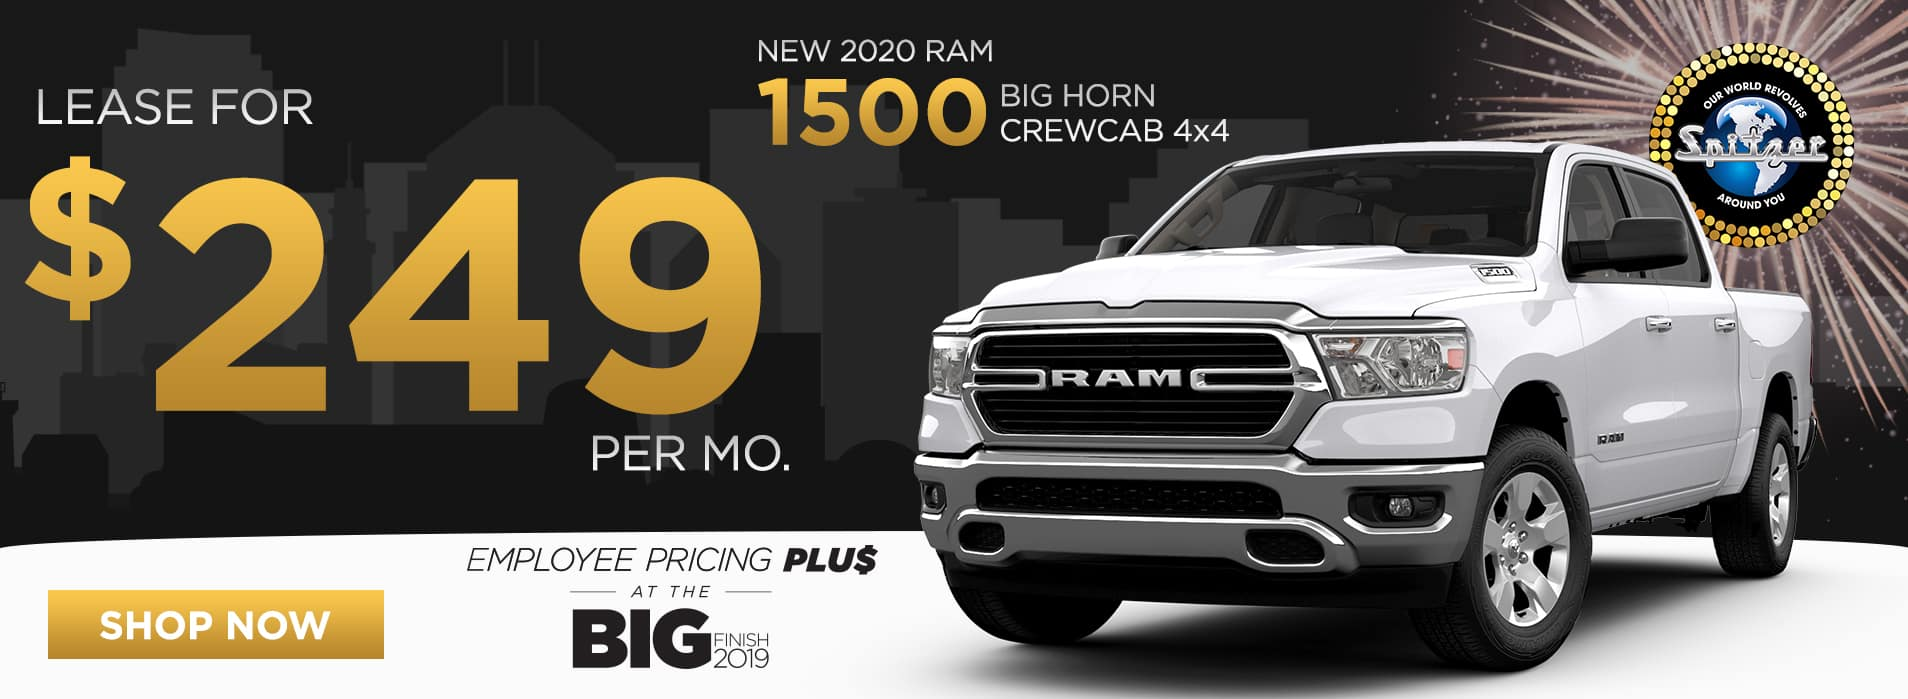 RAM 1500   Lease for $249 per mo